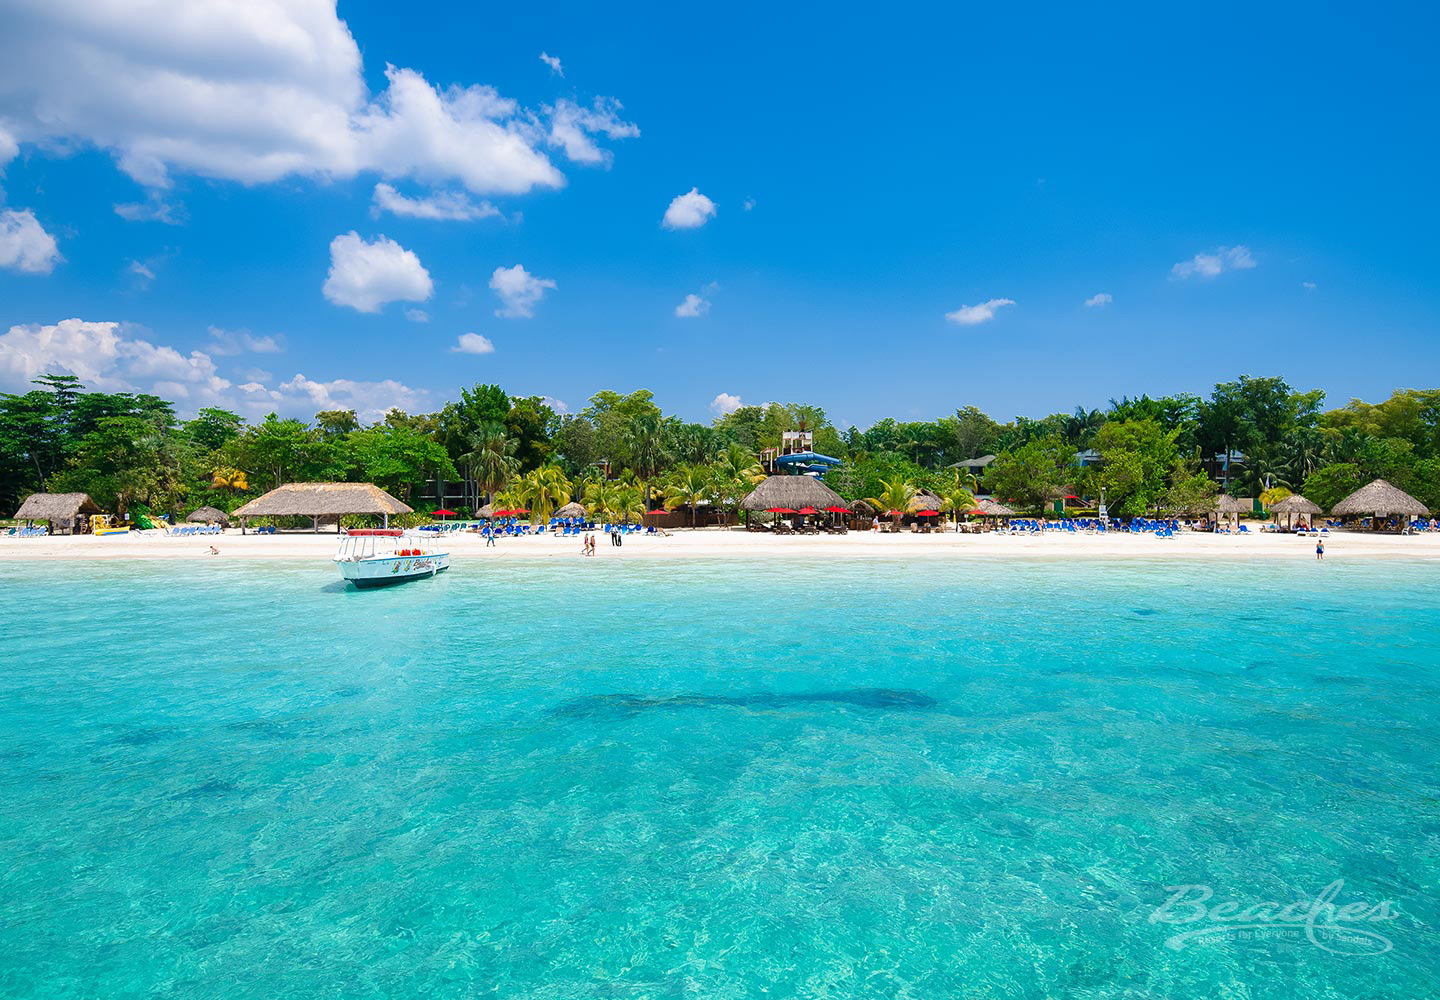 Travel Agency All-Inclusive Resort Beaches Negril 010